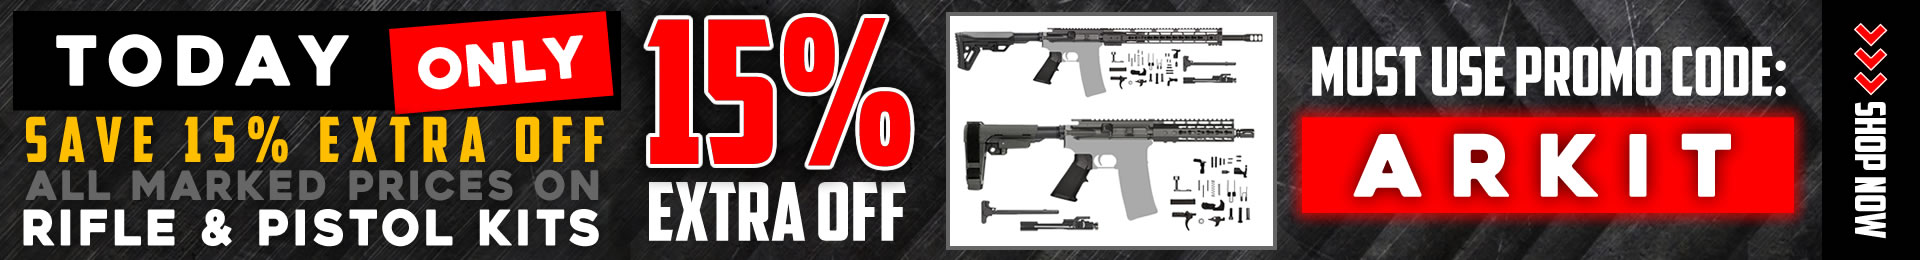 AR-15 Deal Save on Pistol Kits, & AR Rifle Kits